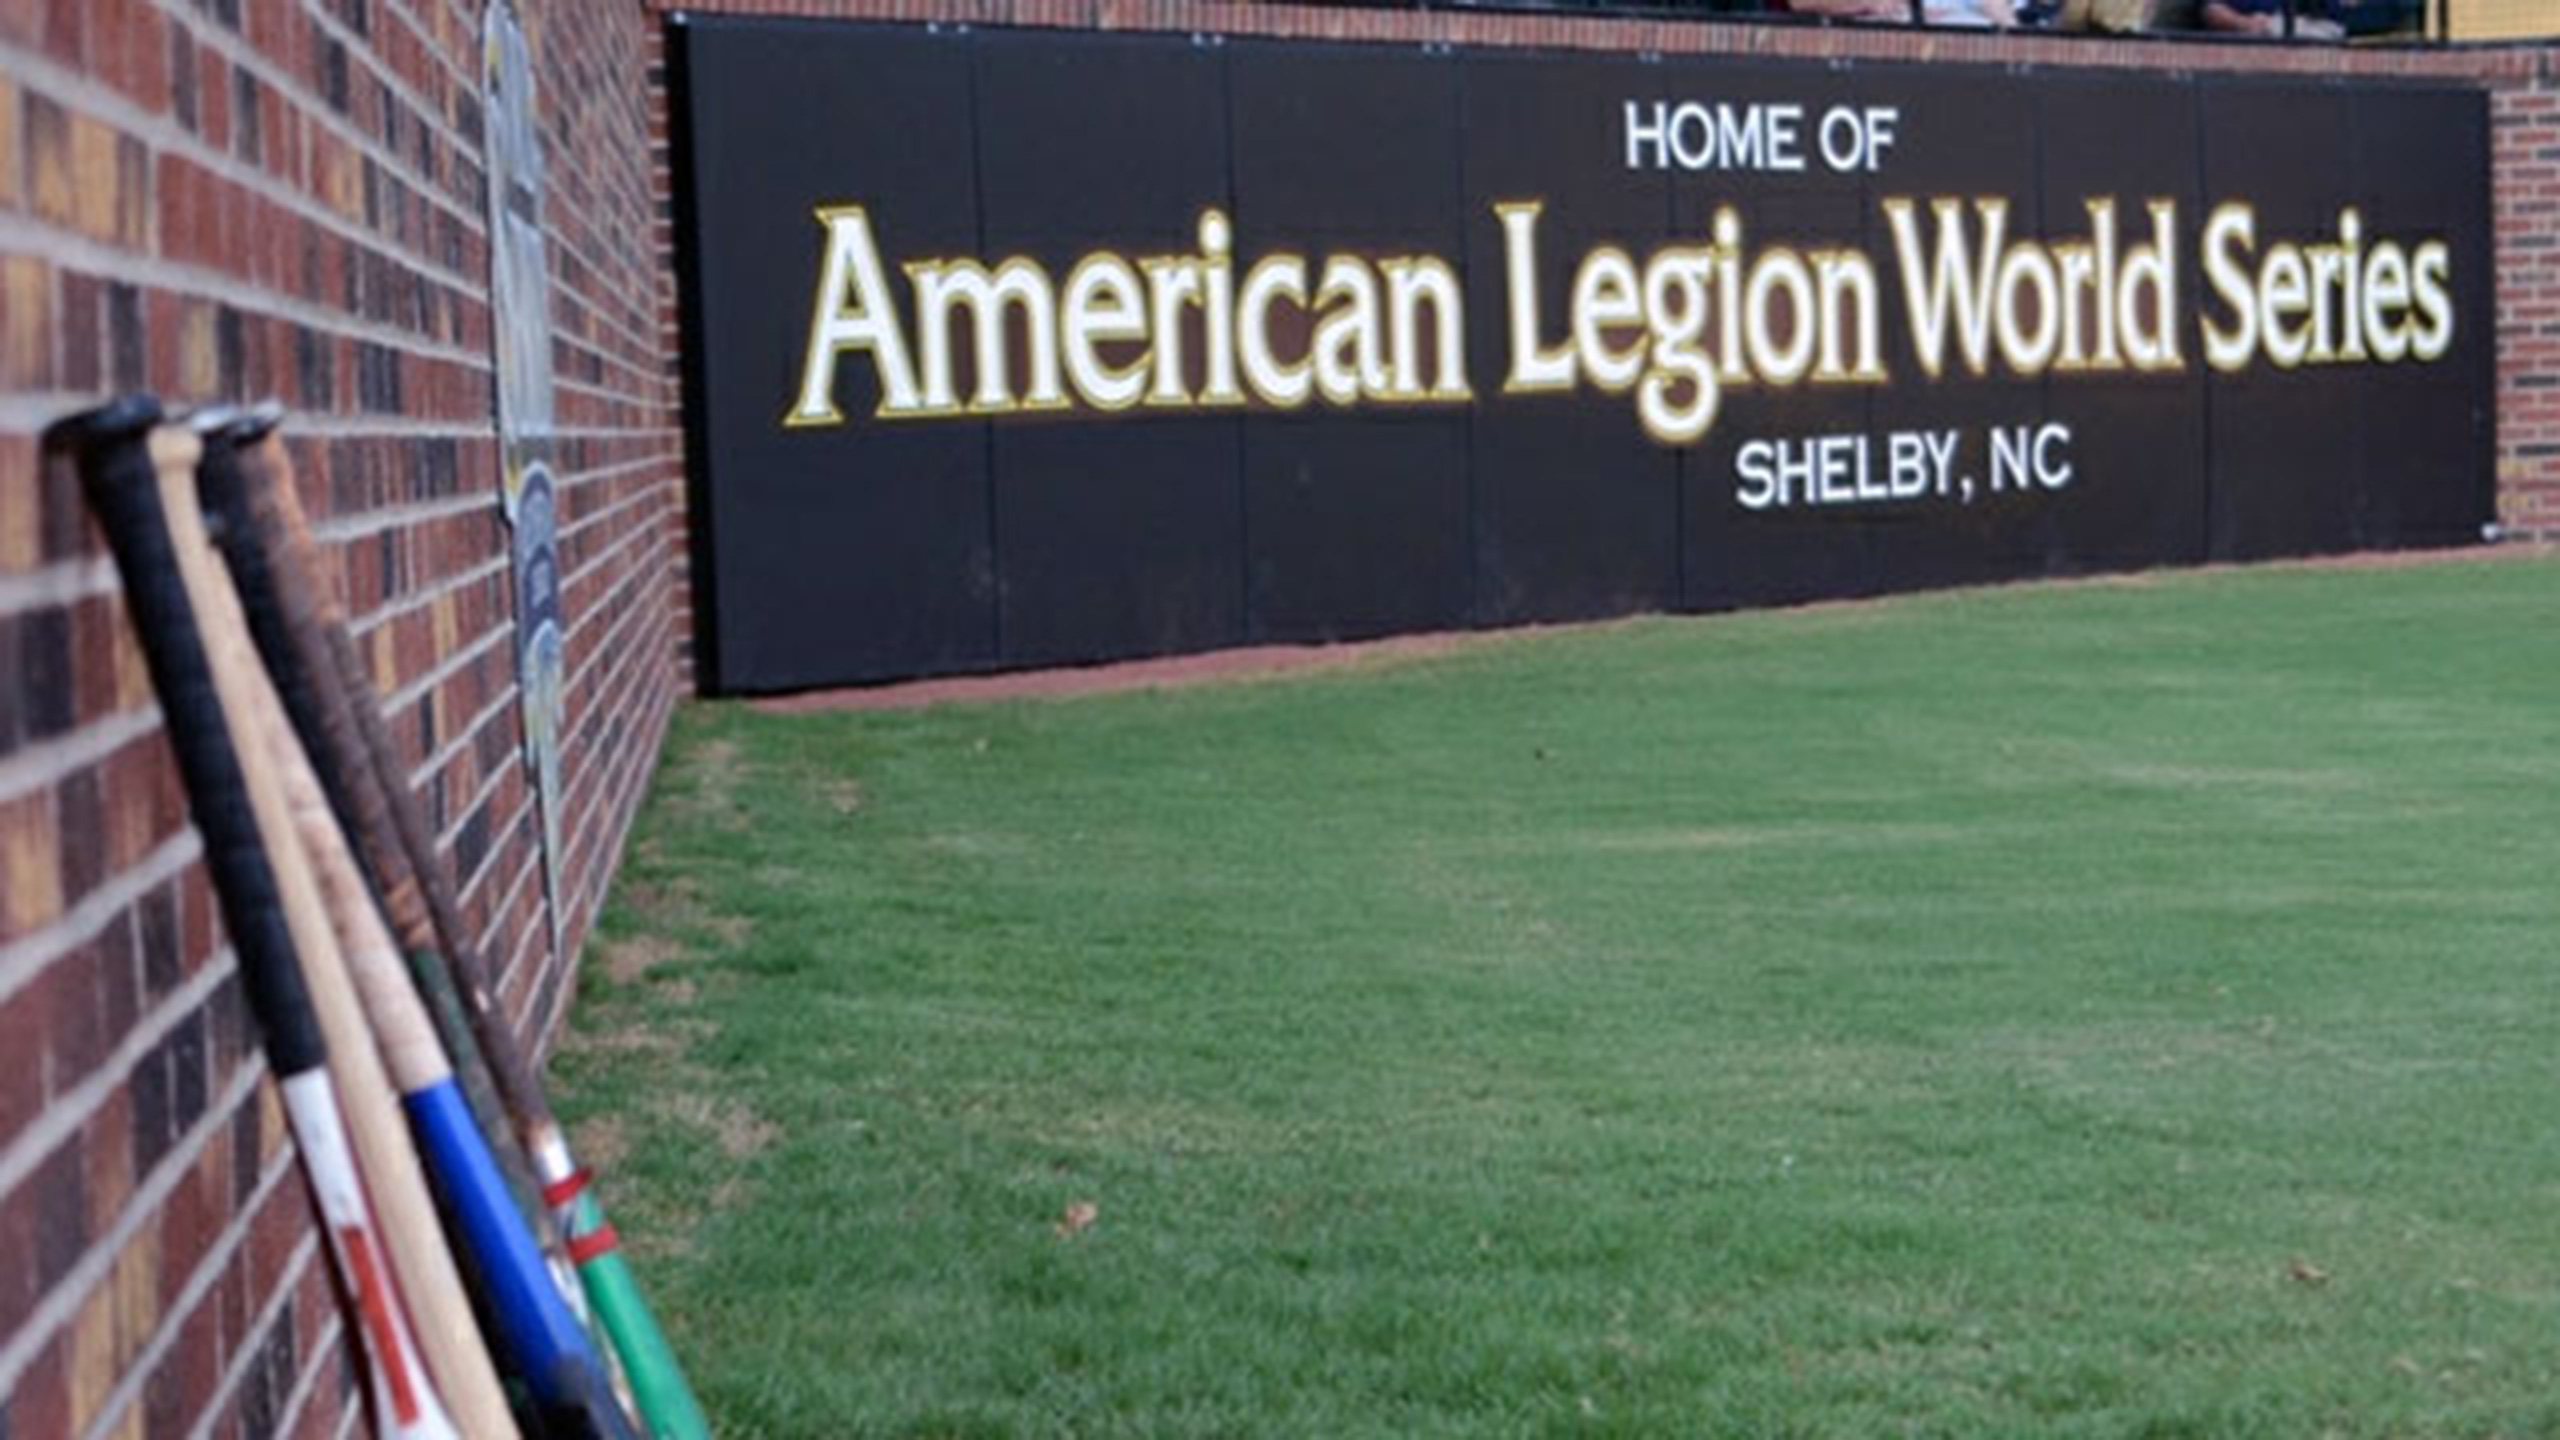 Northwest vs. Western (American Legion)